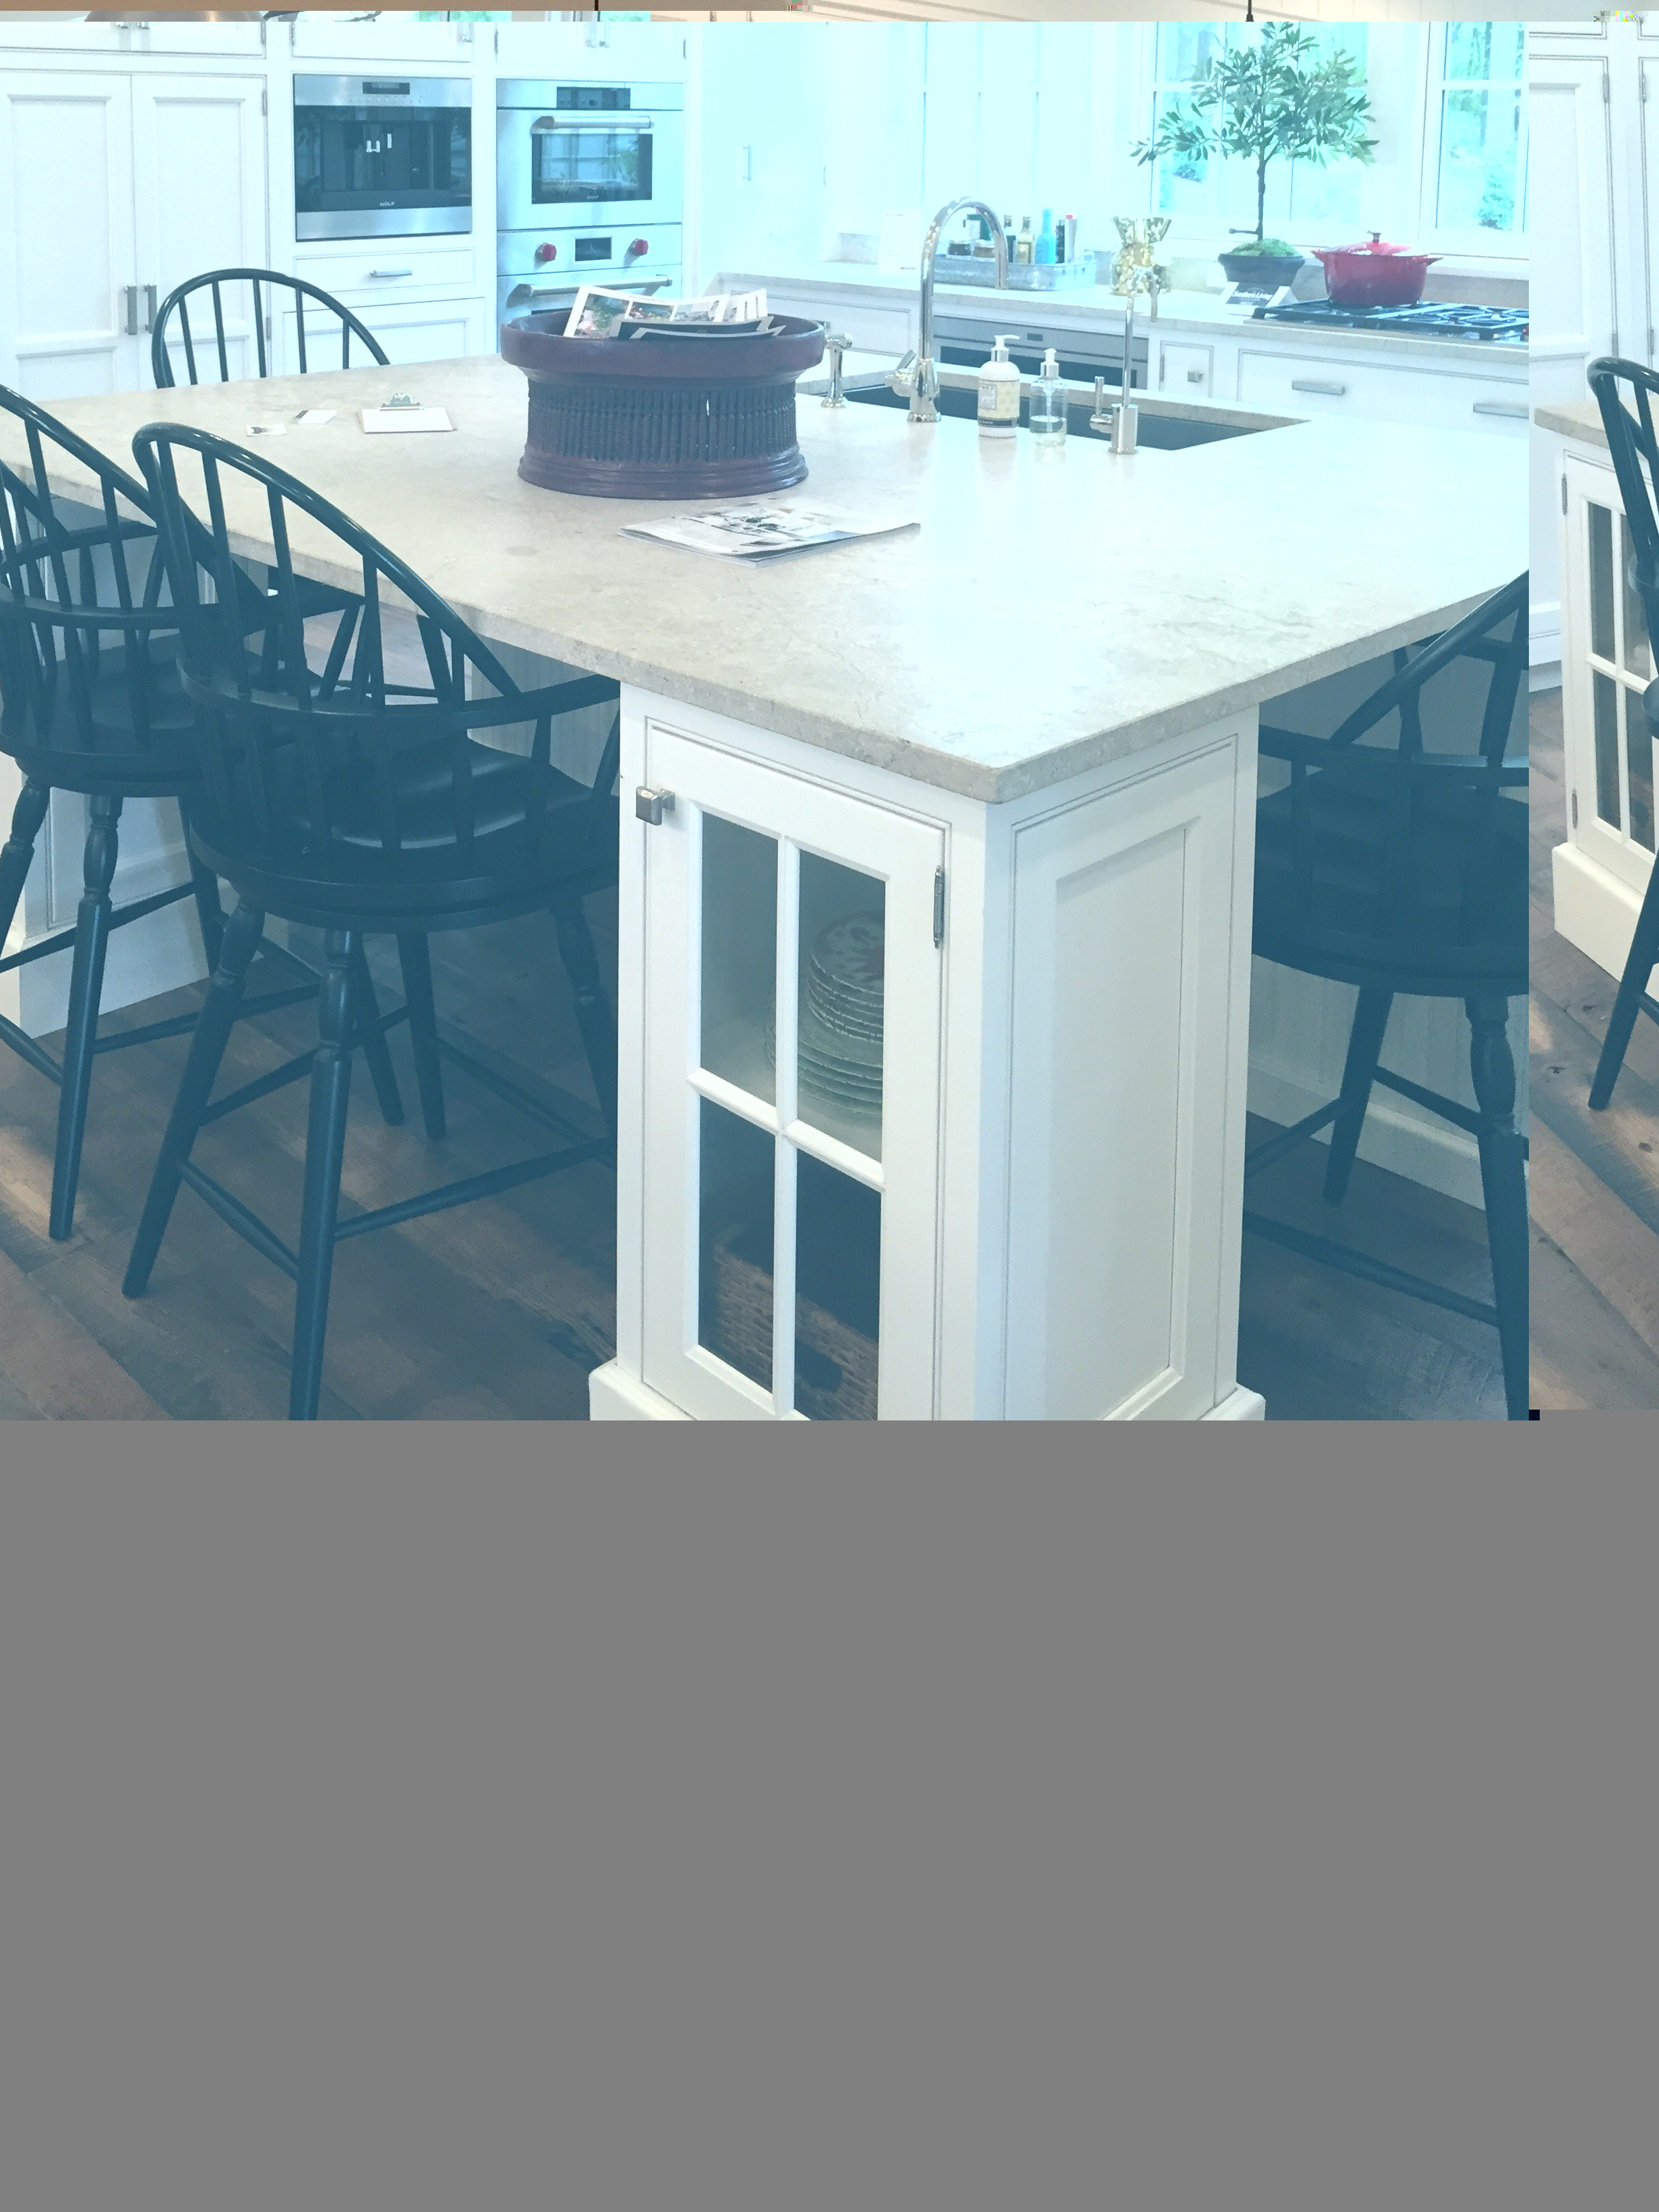 2015 SOUTHERN LIVING IDEA HOUSE IN CHARLOTTESVILLE VA THE KITCHEN